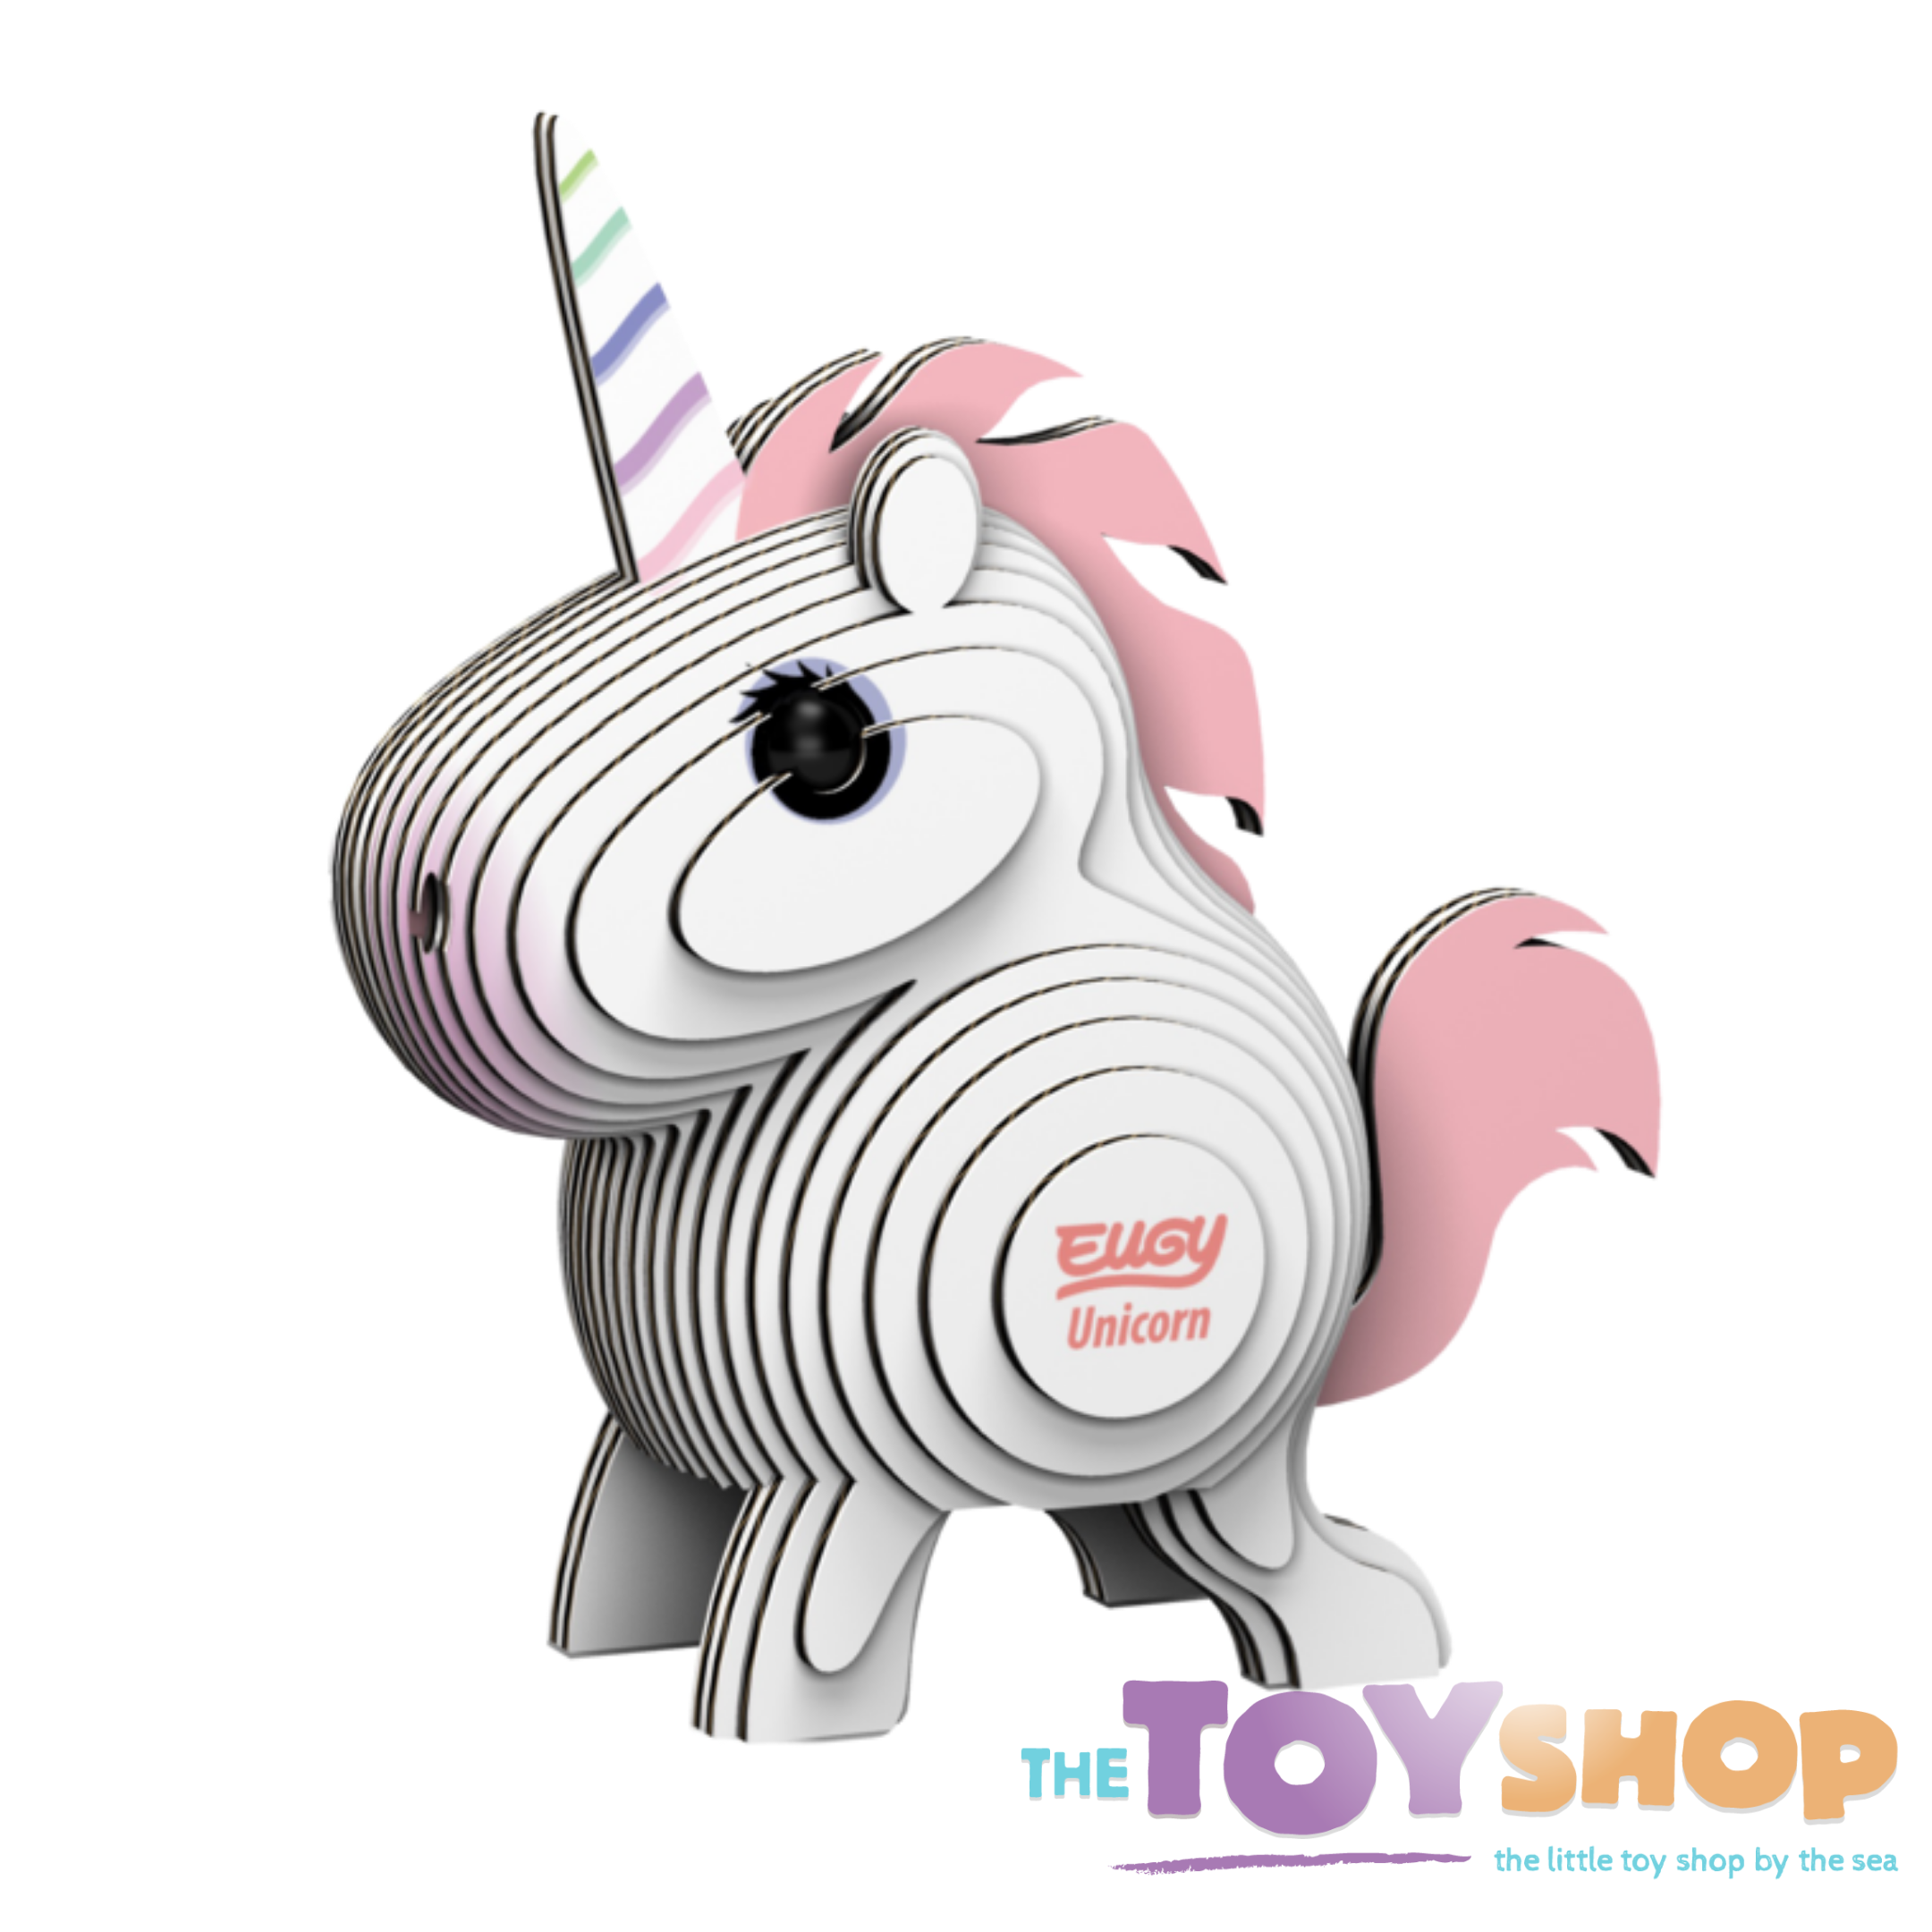 3D model of a Eugy Unicorn made from card pieces.